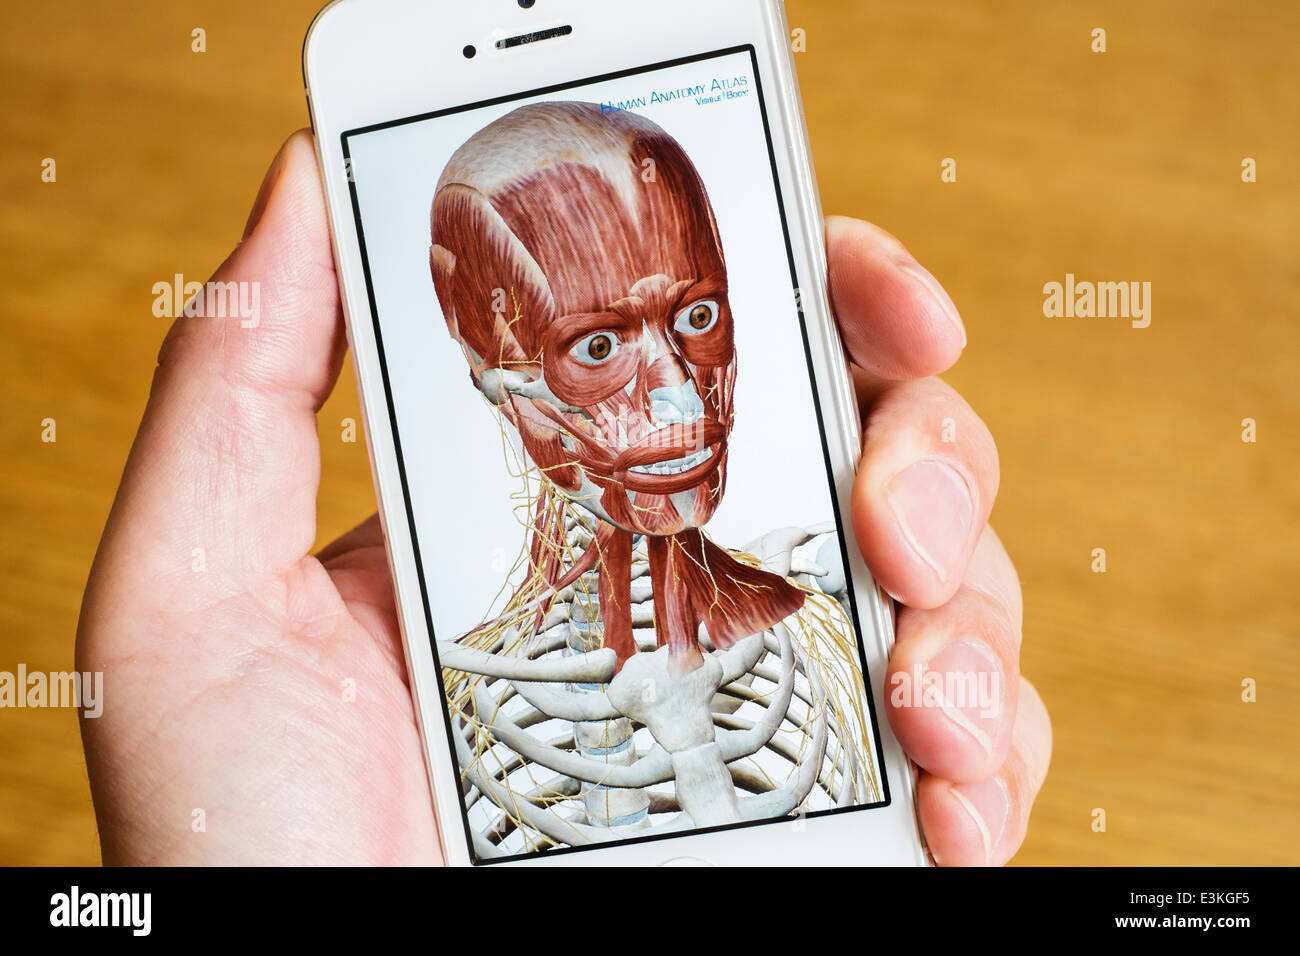 Detail of educational medical 3D human anatomy atlas on an iPhone smart phone - Stock Image